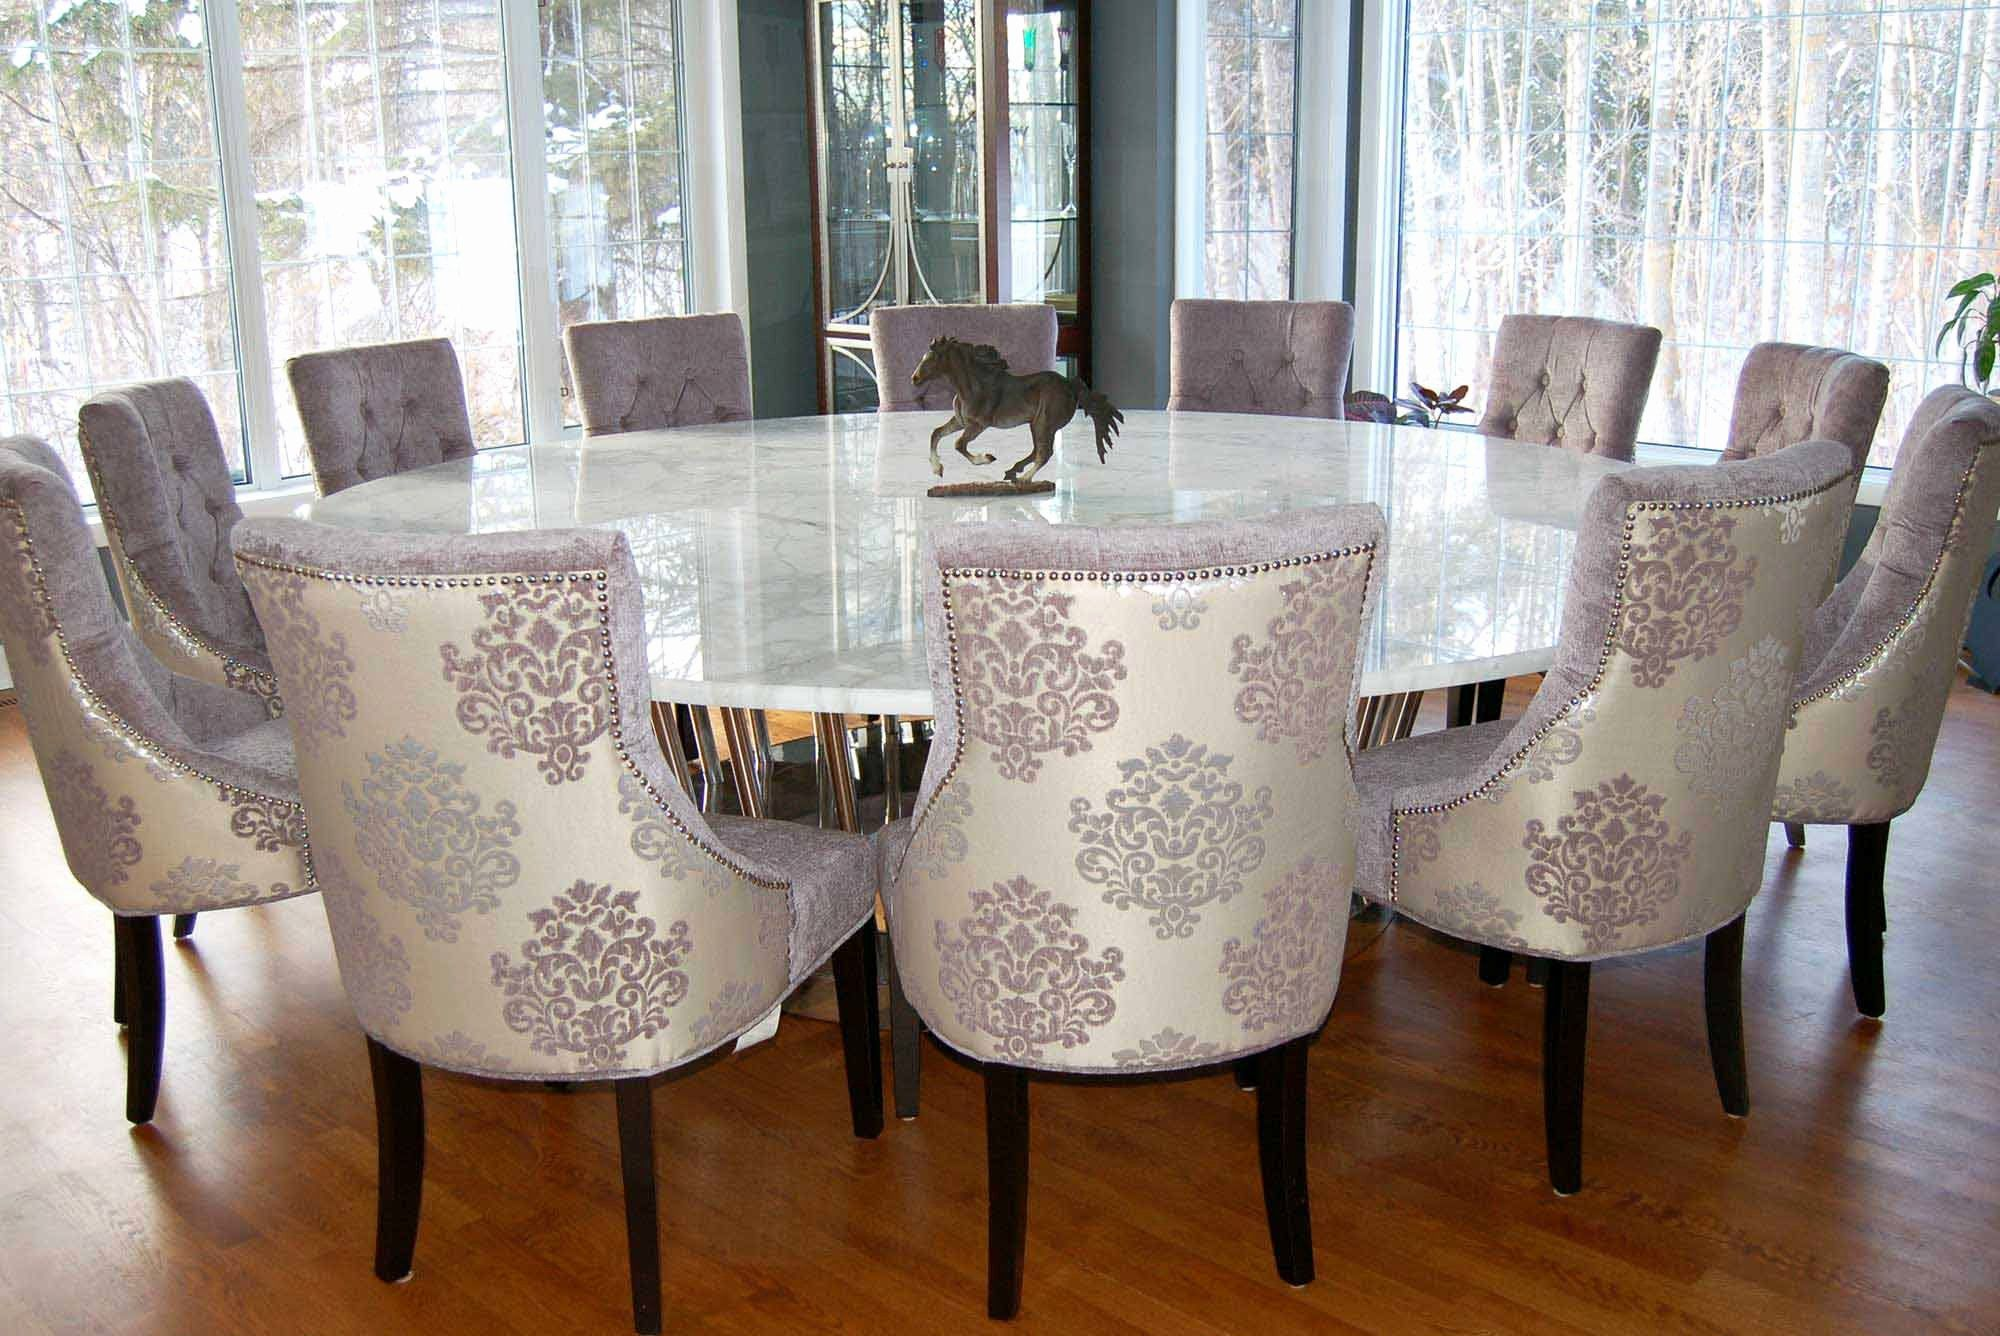 28 New 12 Seating Dining Room Table In 2020 Large Dining Room